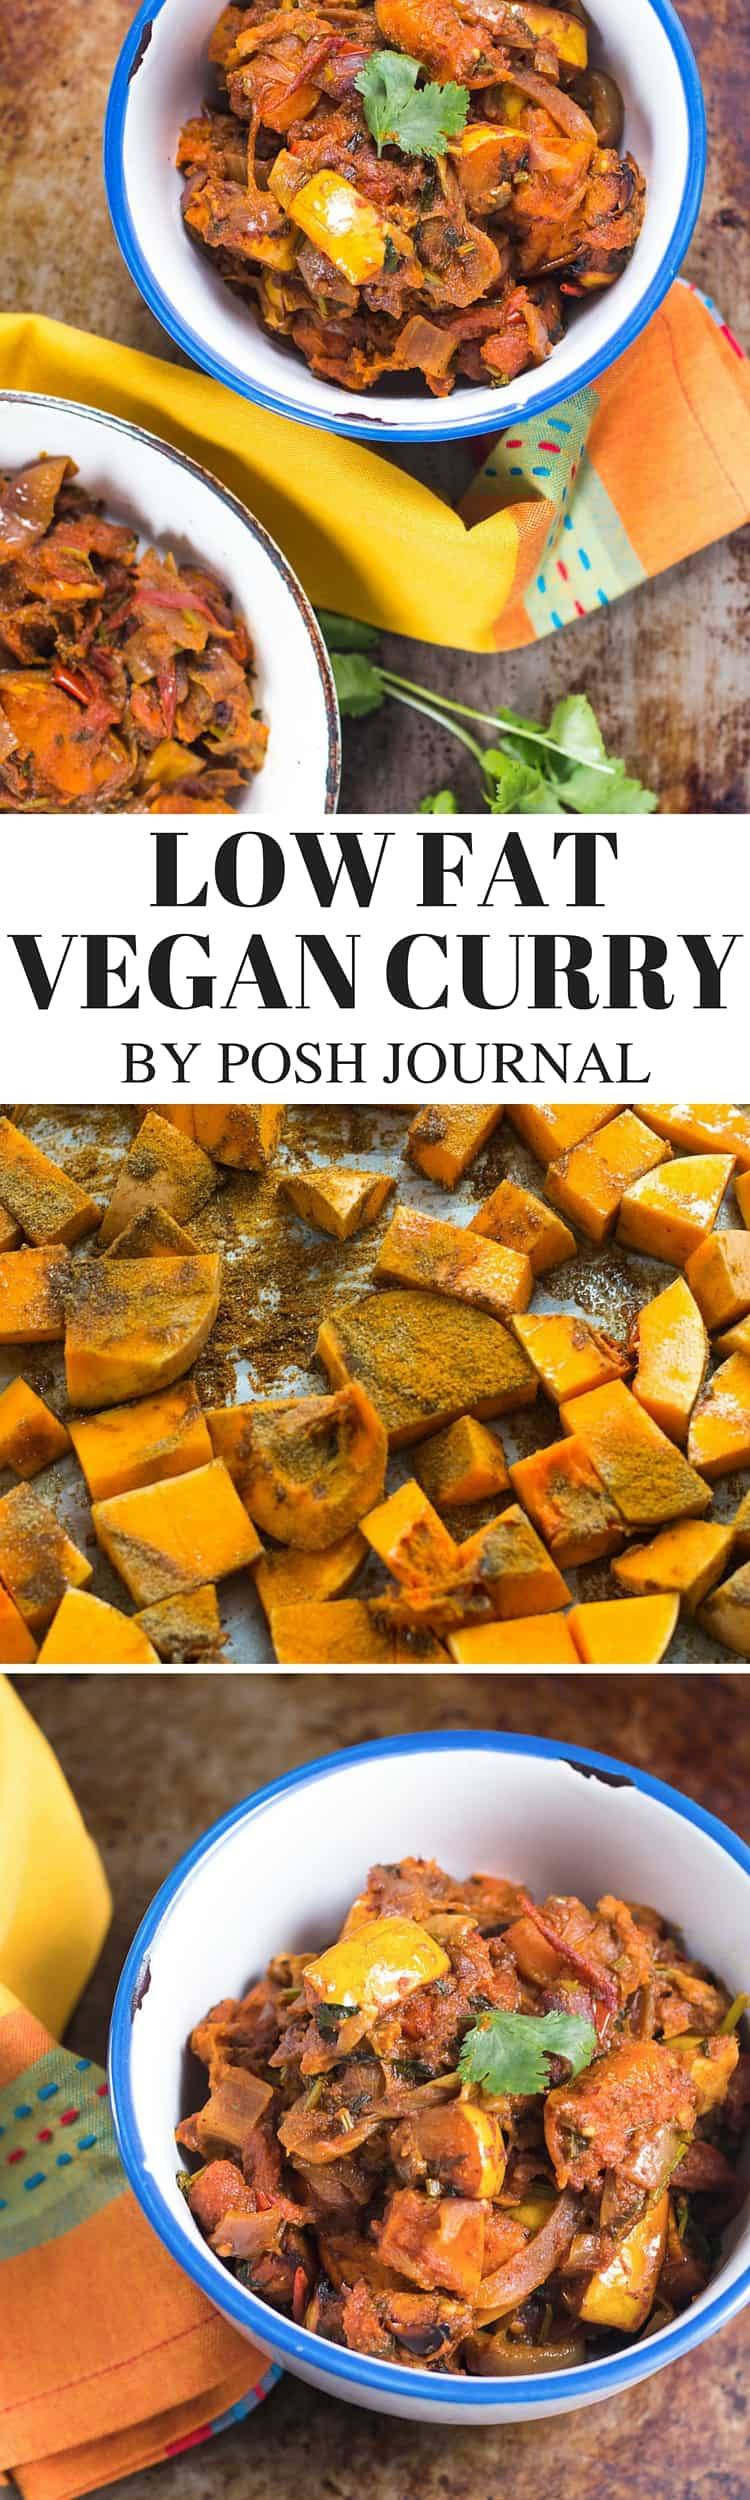 low fat vegan curry